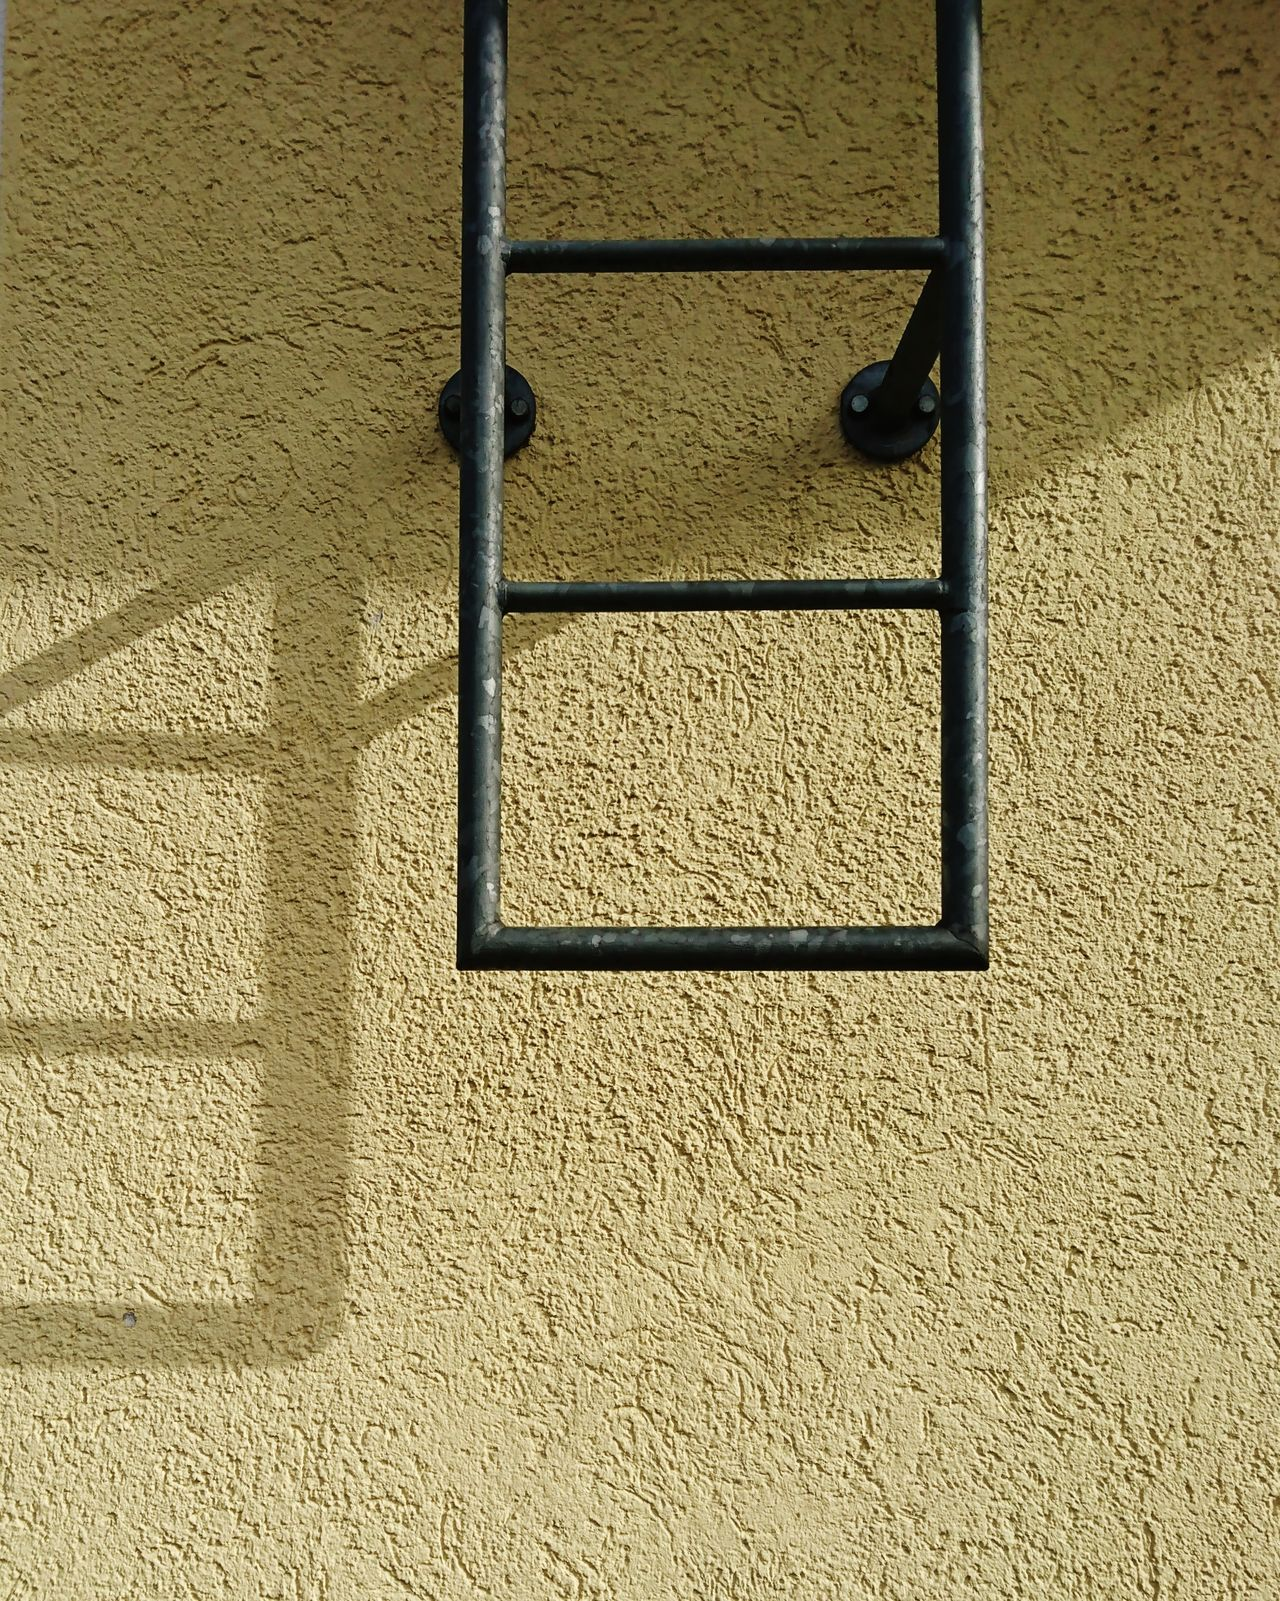 Yellow & Shadows Metal Textured  Pattern Built Structure Outdoors Day Architecture No People Yellow Metal Fireladder